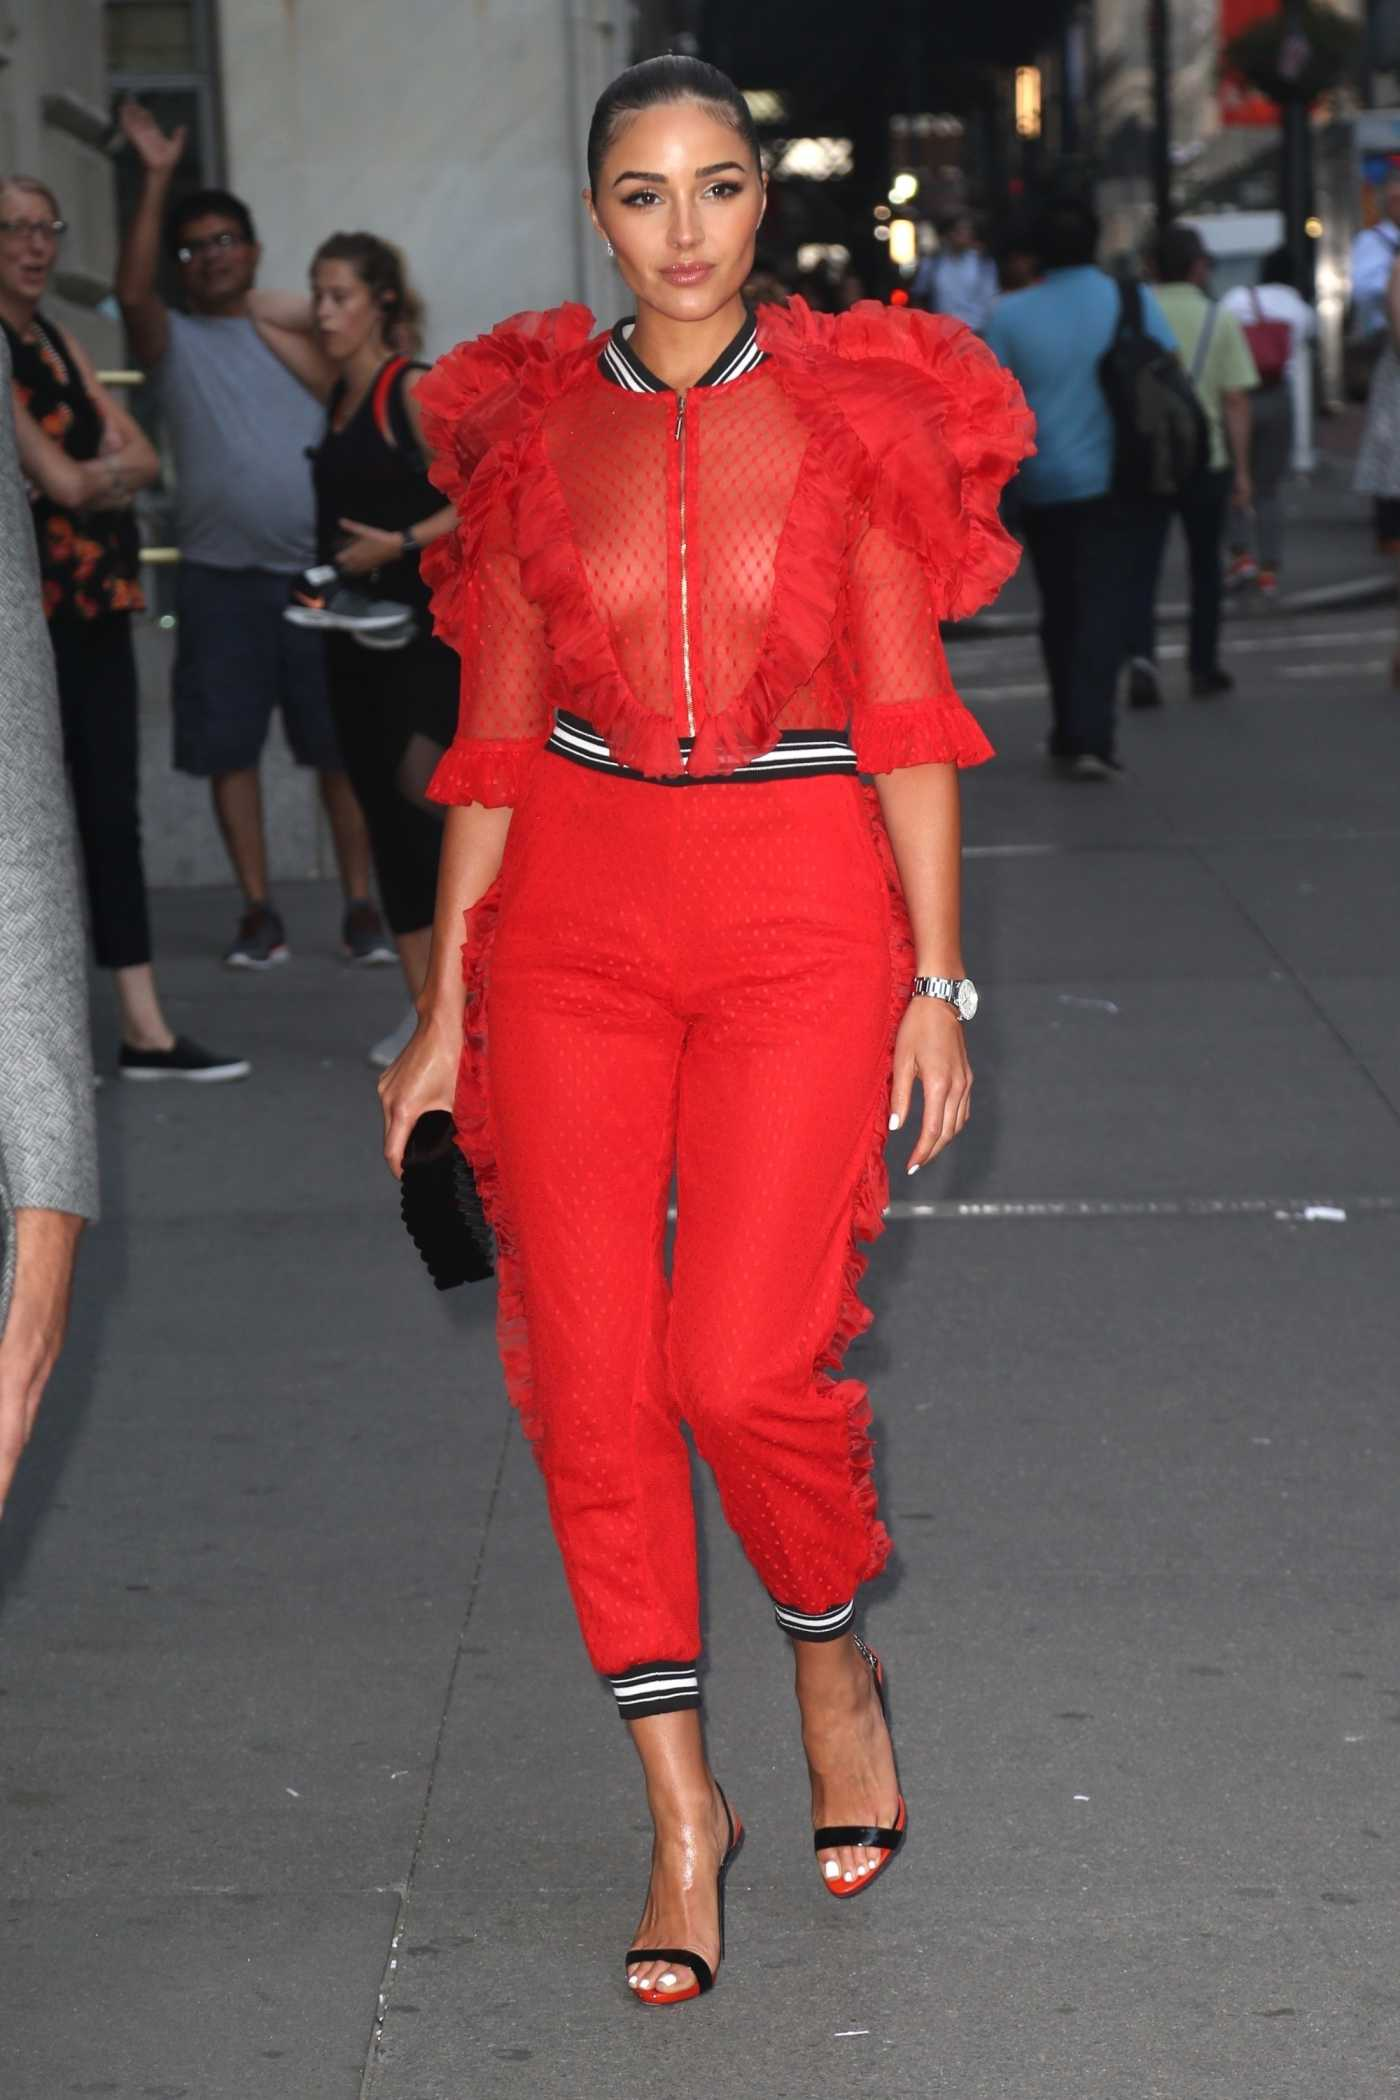 Olivia Culpo in a Red Suit Arrives at the Tag Heuer Event in New York 07/10/2019